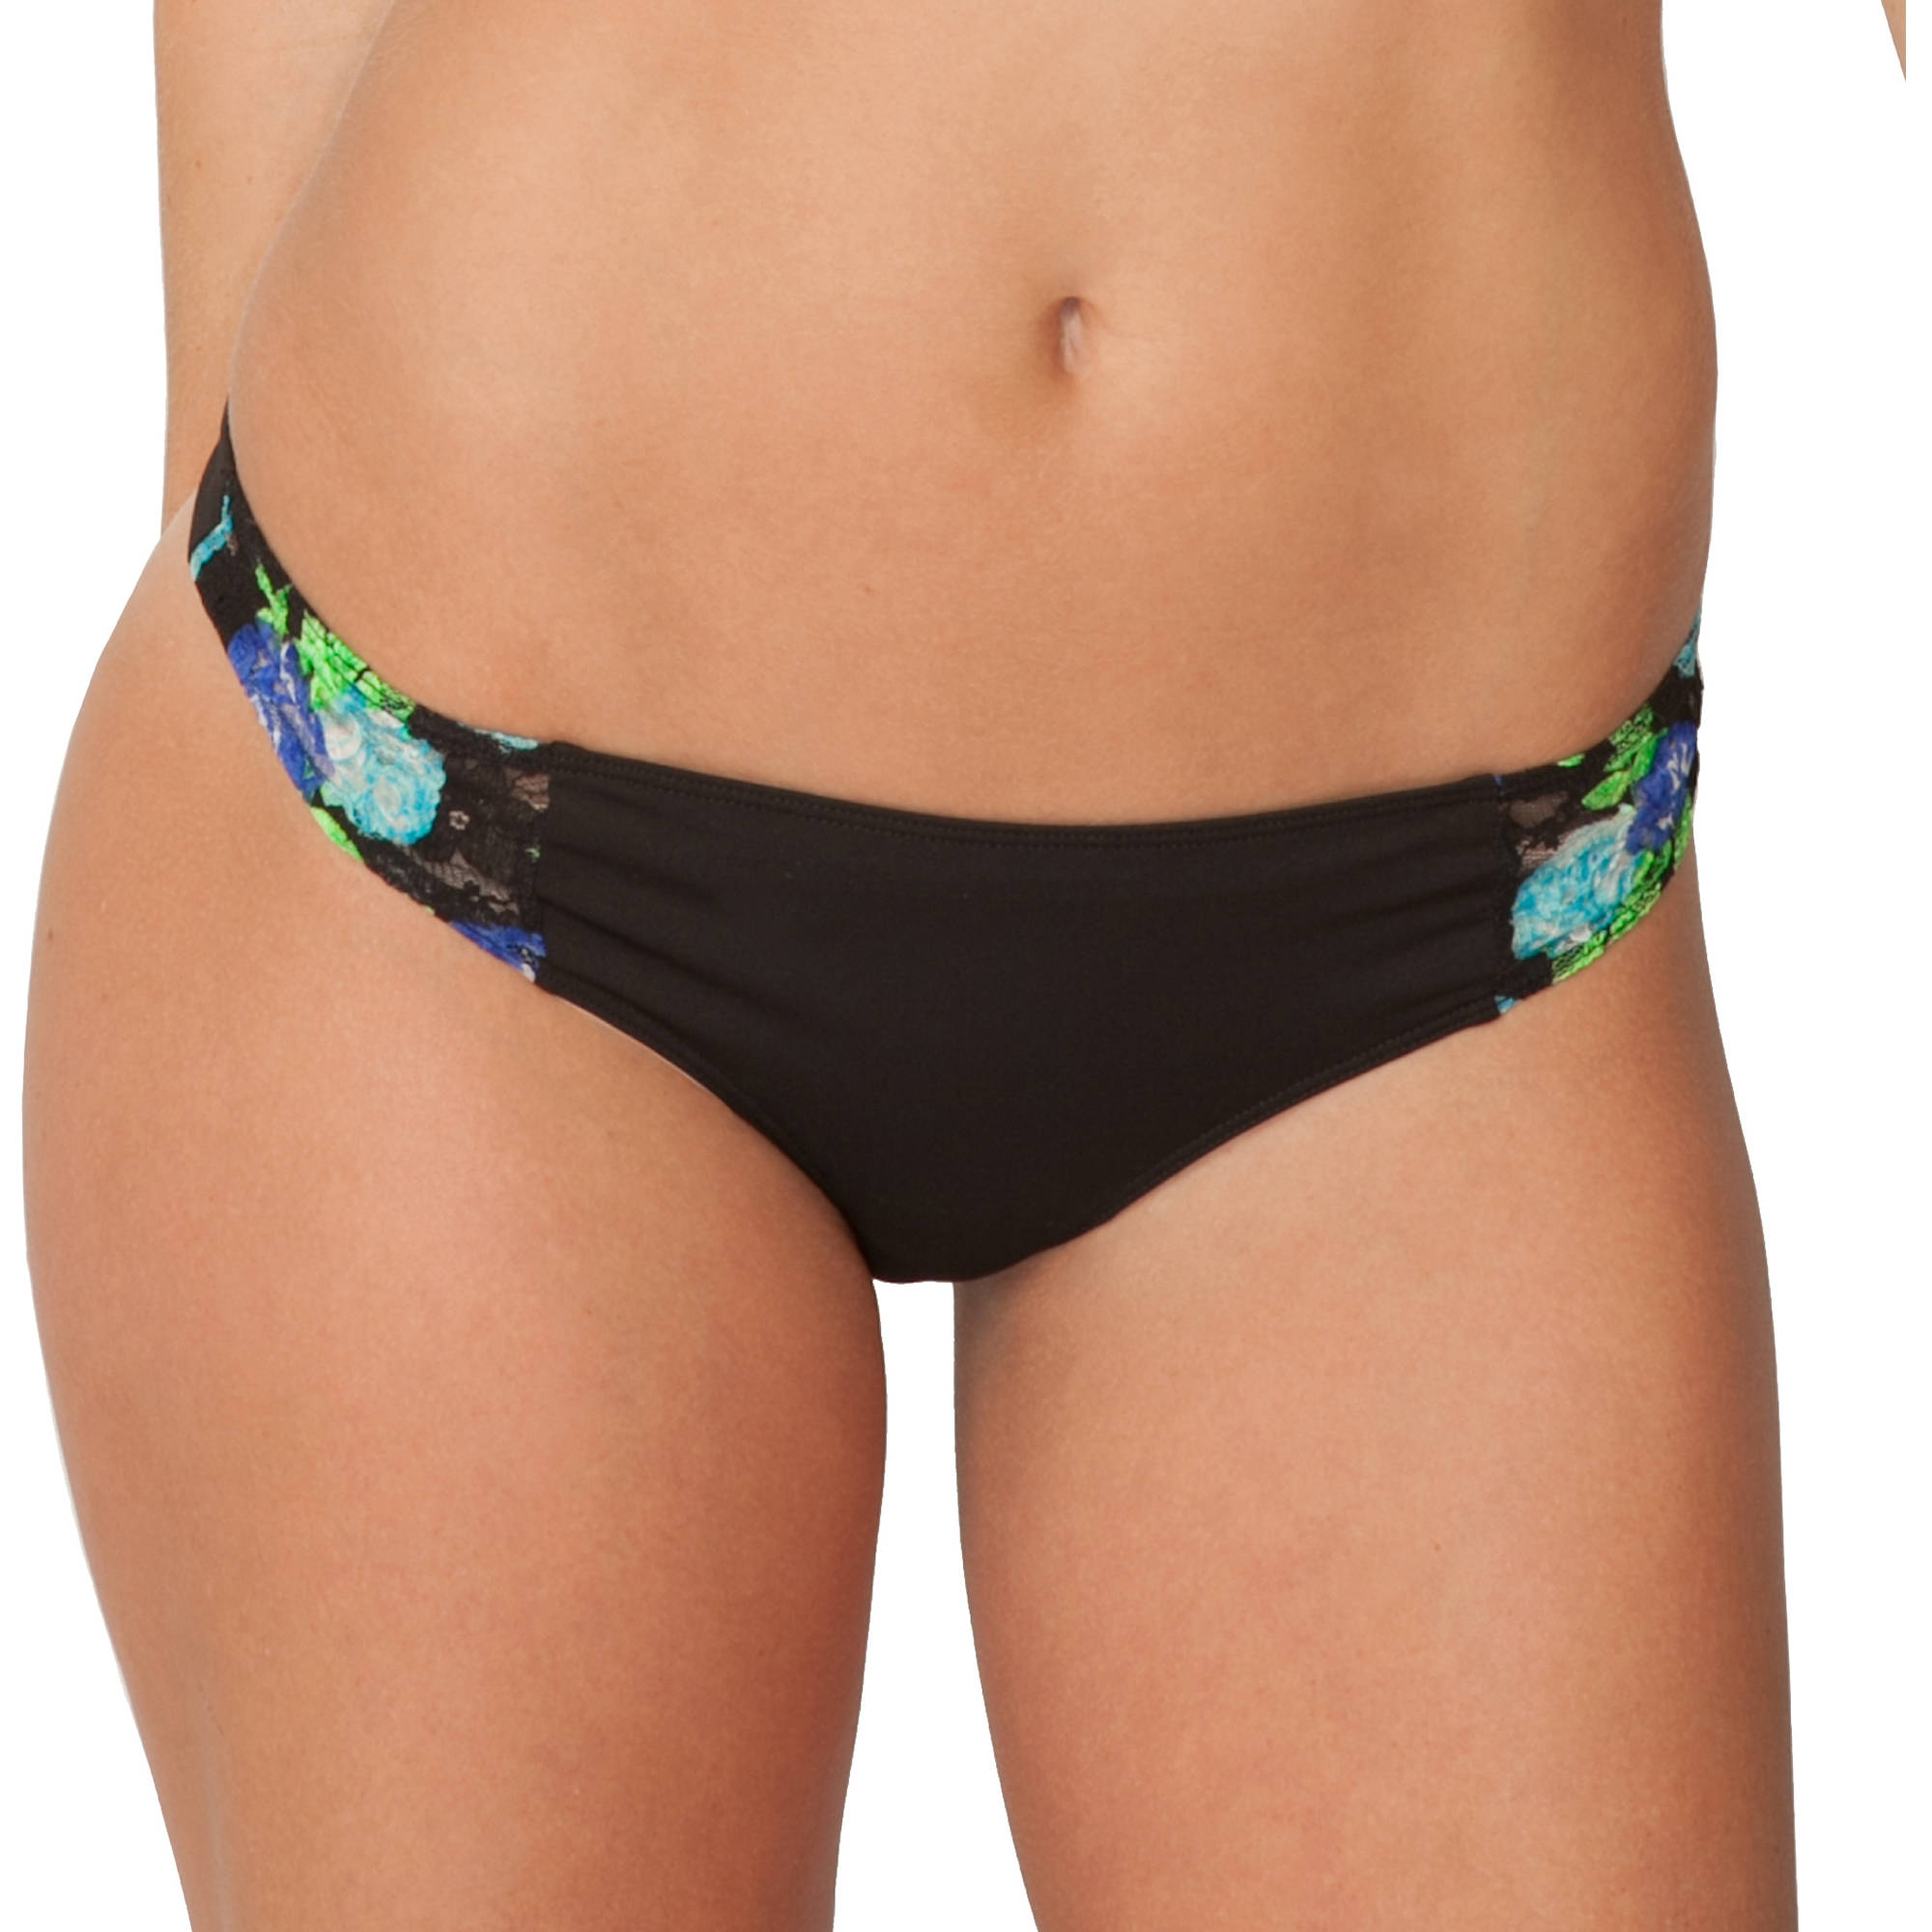 Fruit of the Loom, A Fresh Collection 2PK Thong w/ Lace, Style FT440